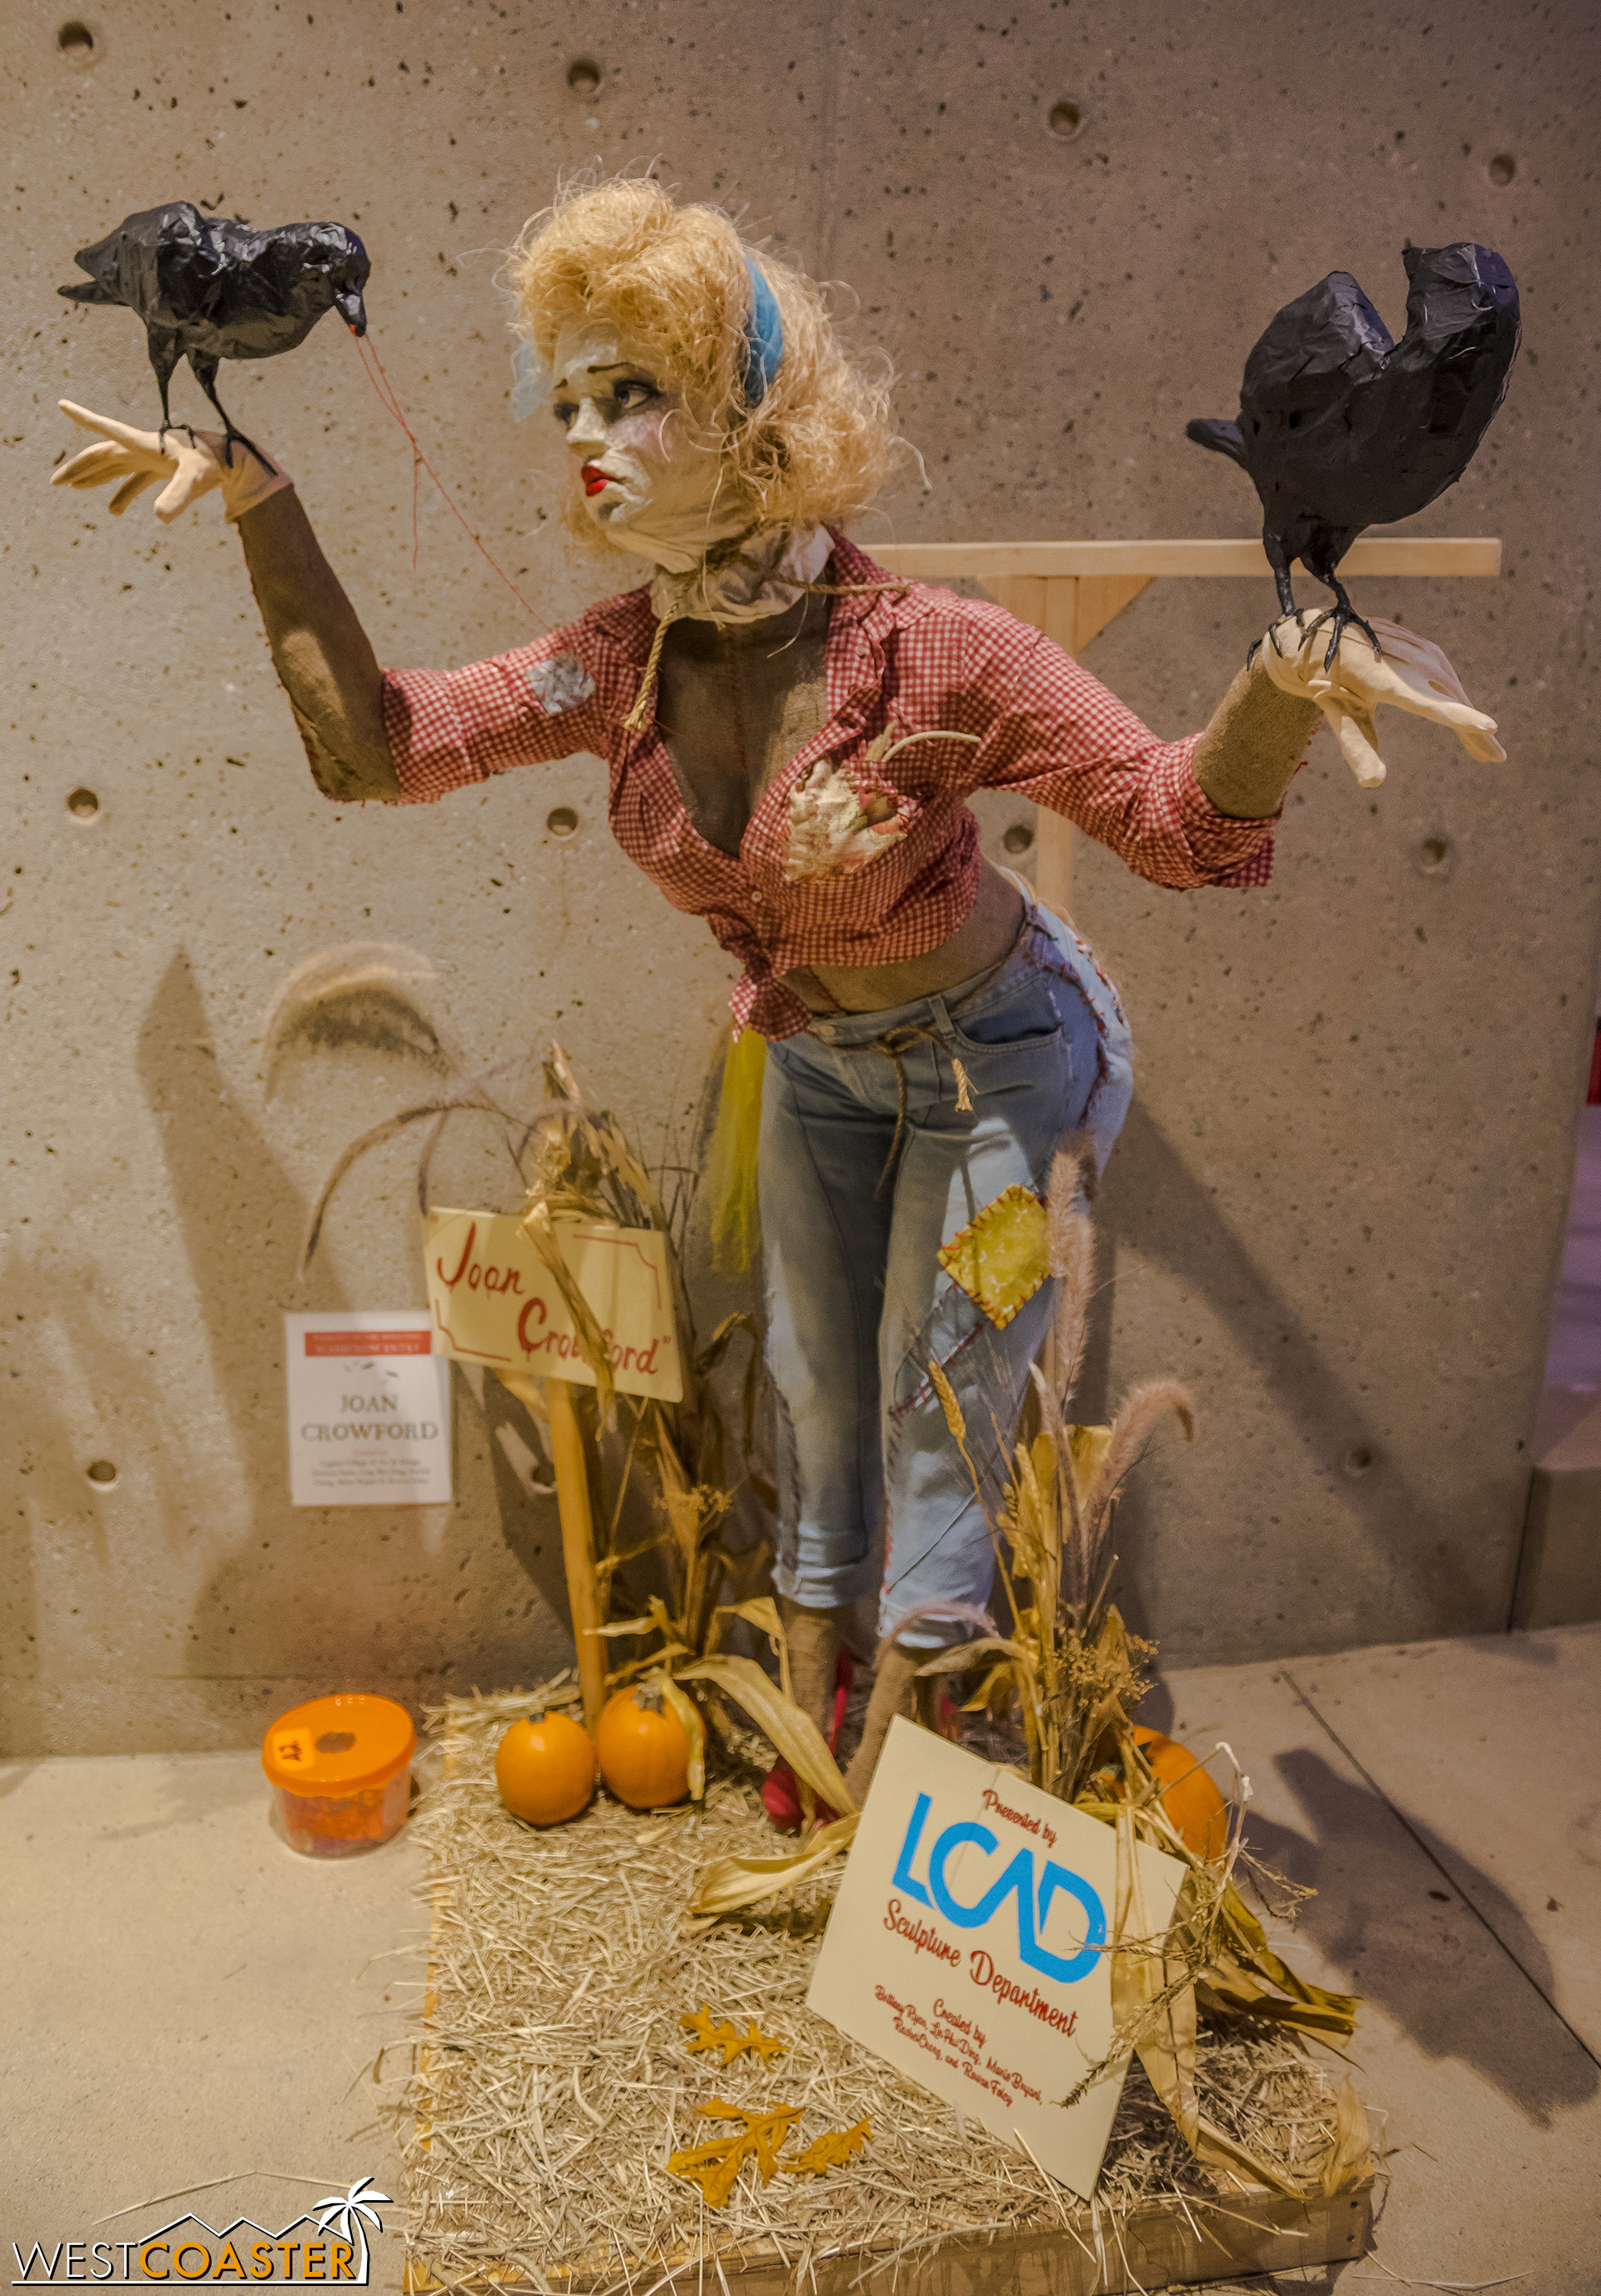 Joan Crowford struck me as a little disturbing, but I guess that's the point of a scarecrow!